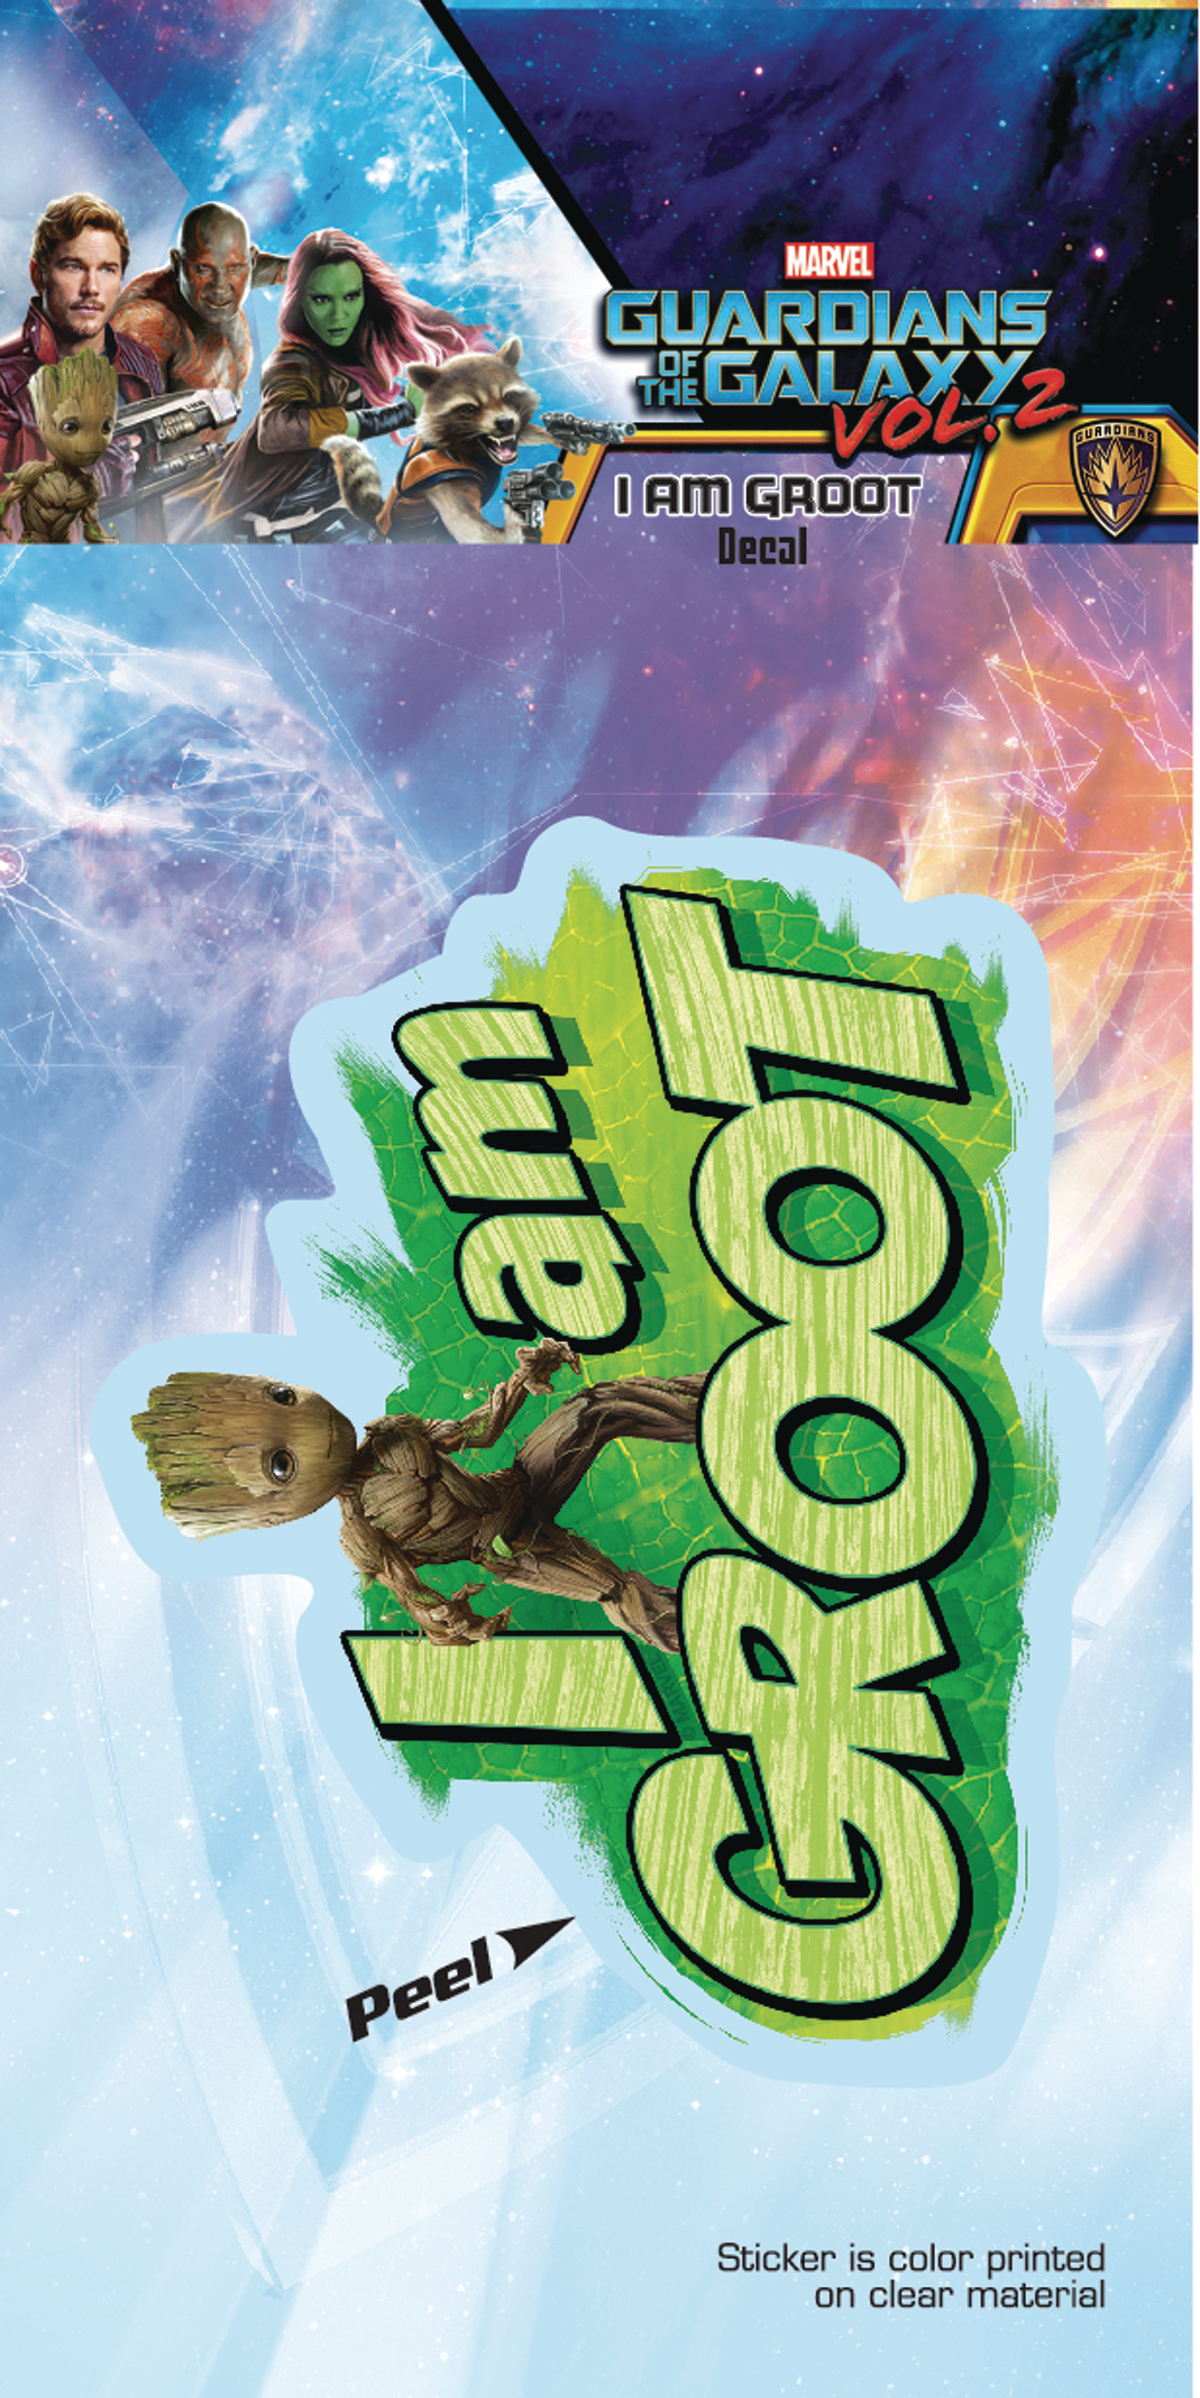 MAR173202 - GUARDIANS OF THE GALAXY VOL2 I AM GROOT DECAL